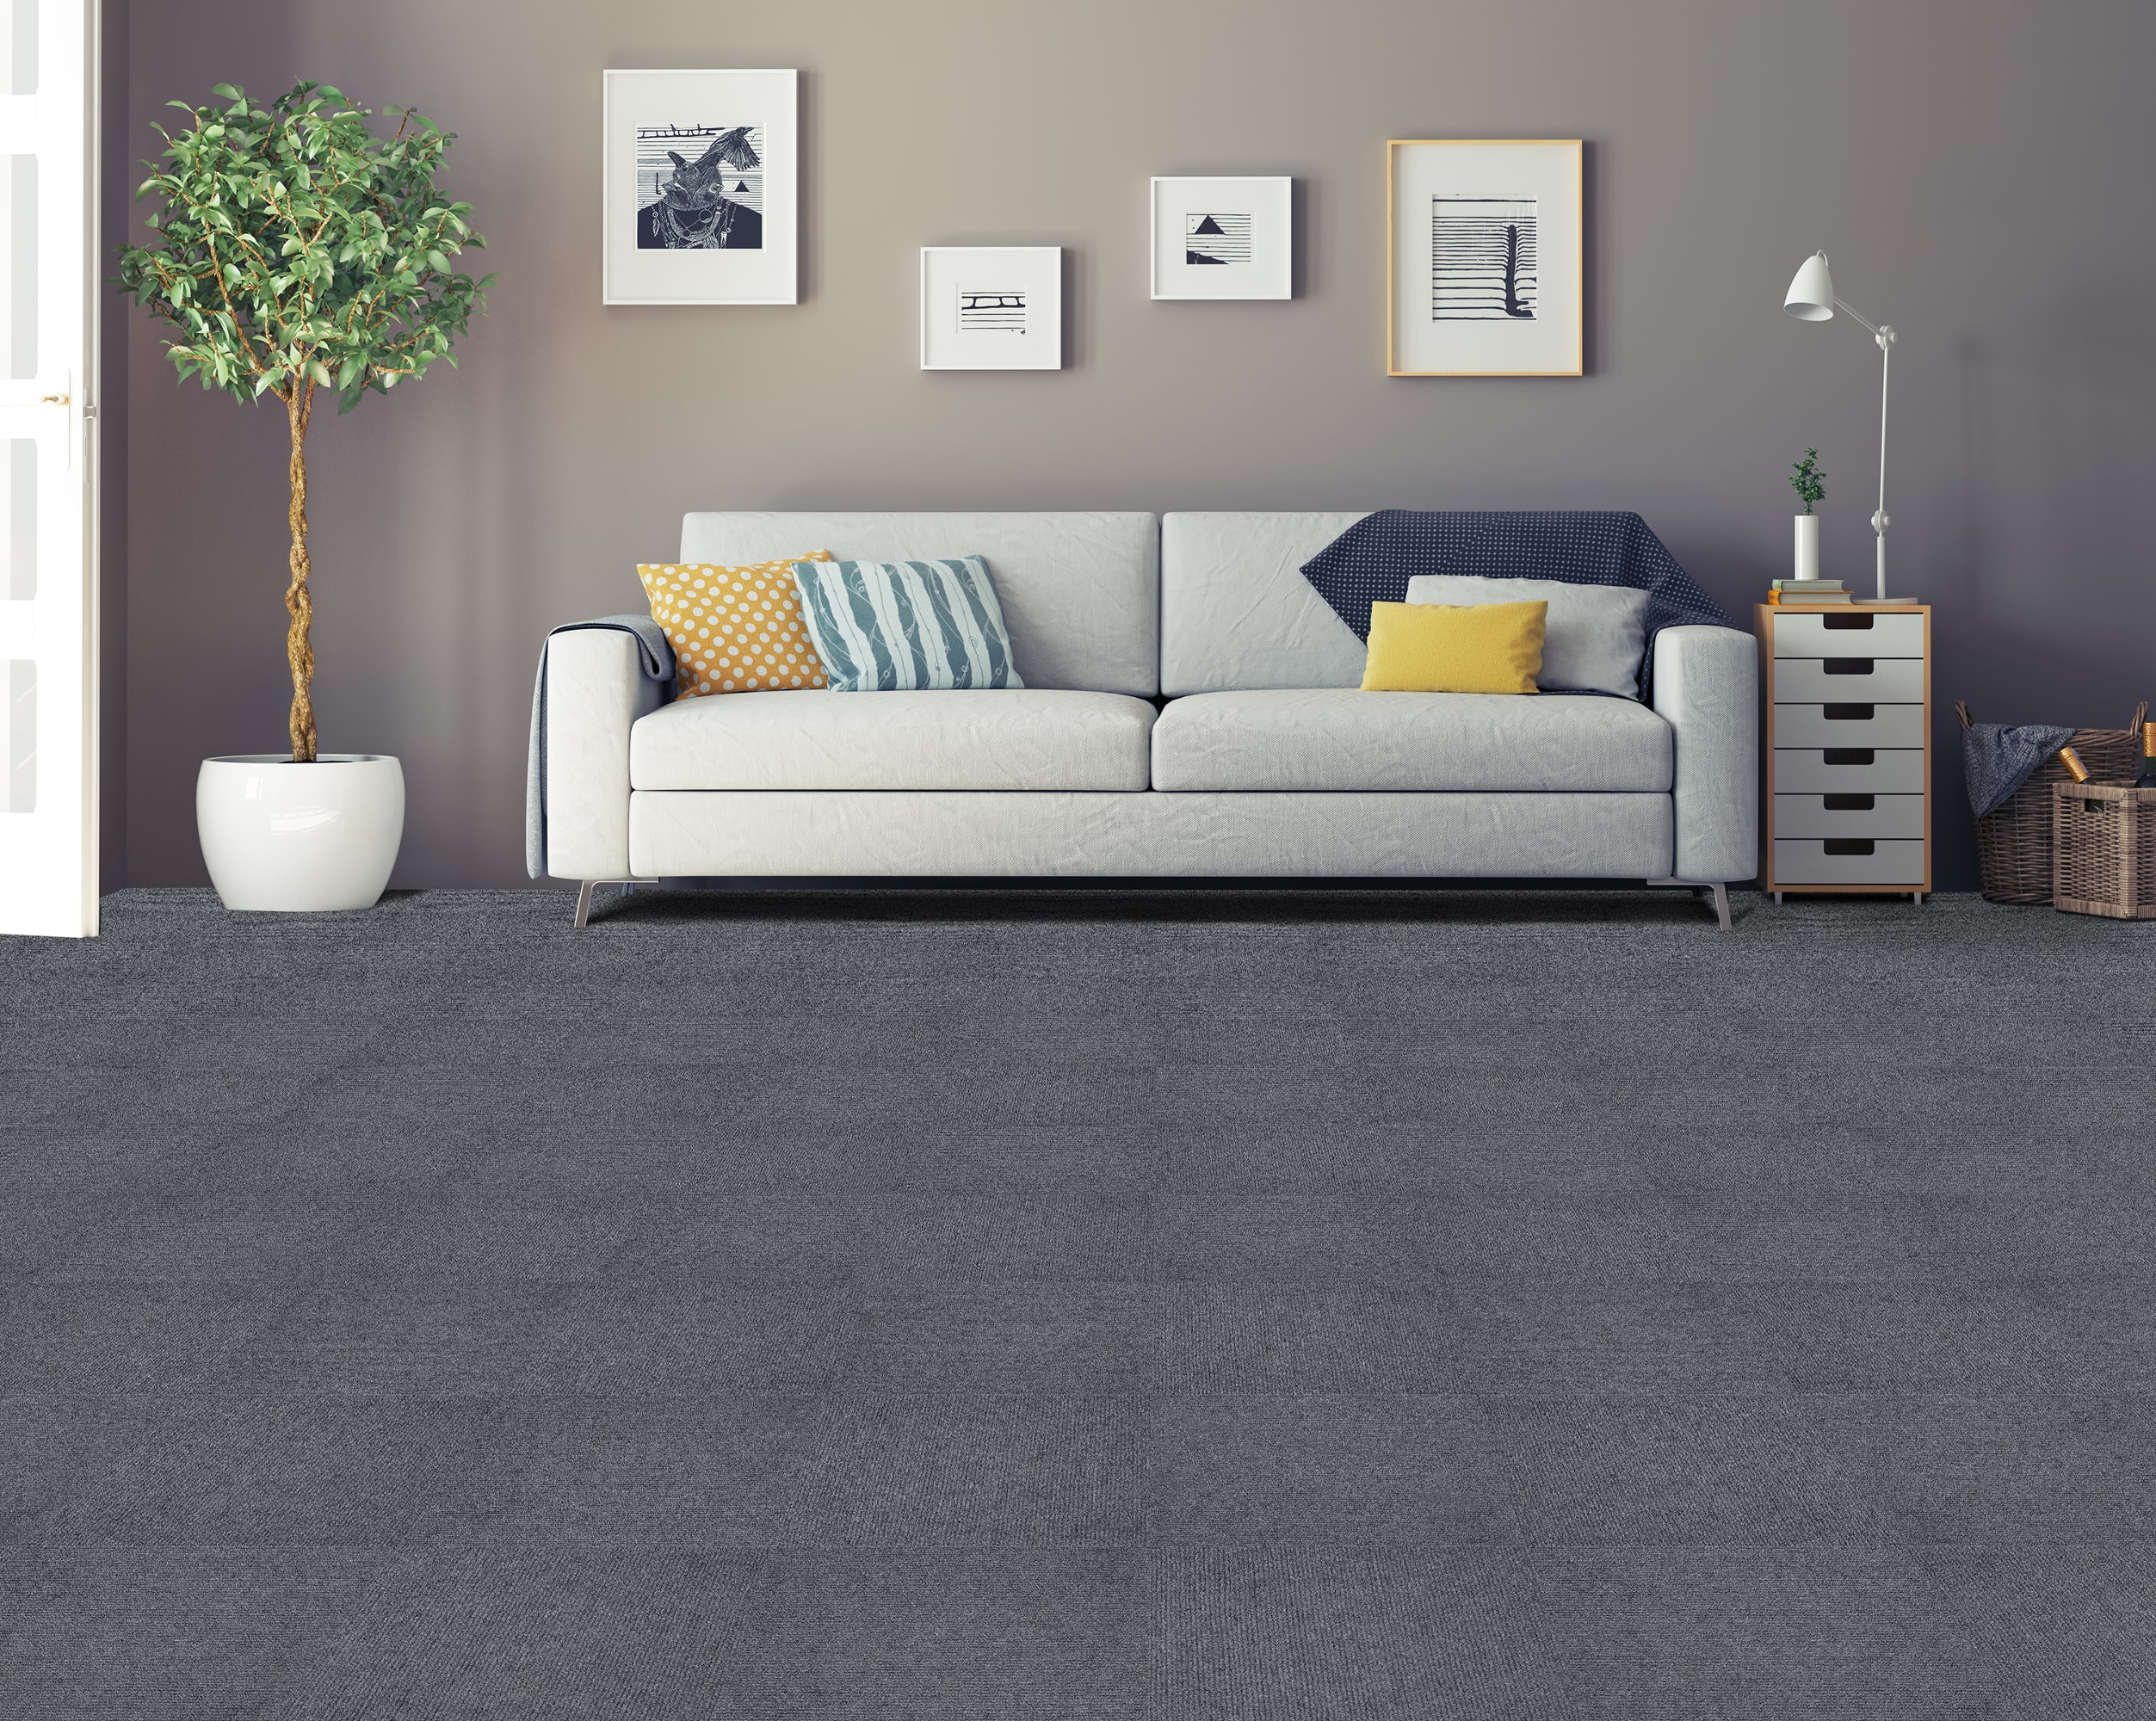 vesdura nexus carpet tiles nexus 12x12 carpet tiles - smoke / 12 x QGPXPKR